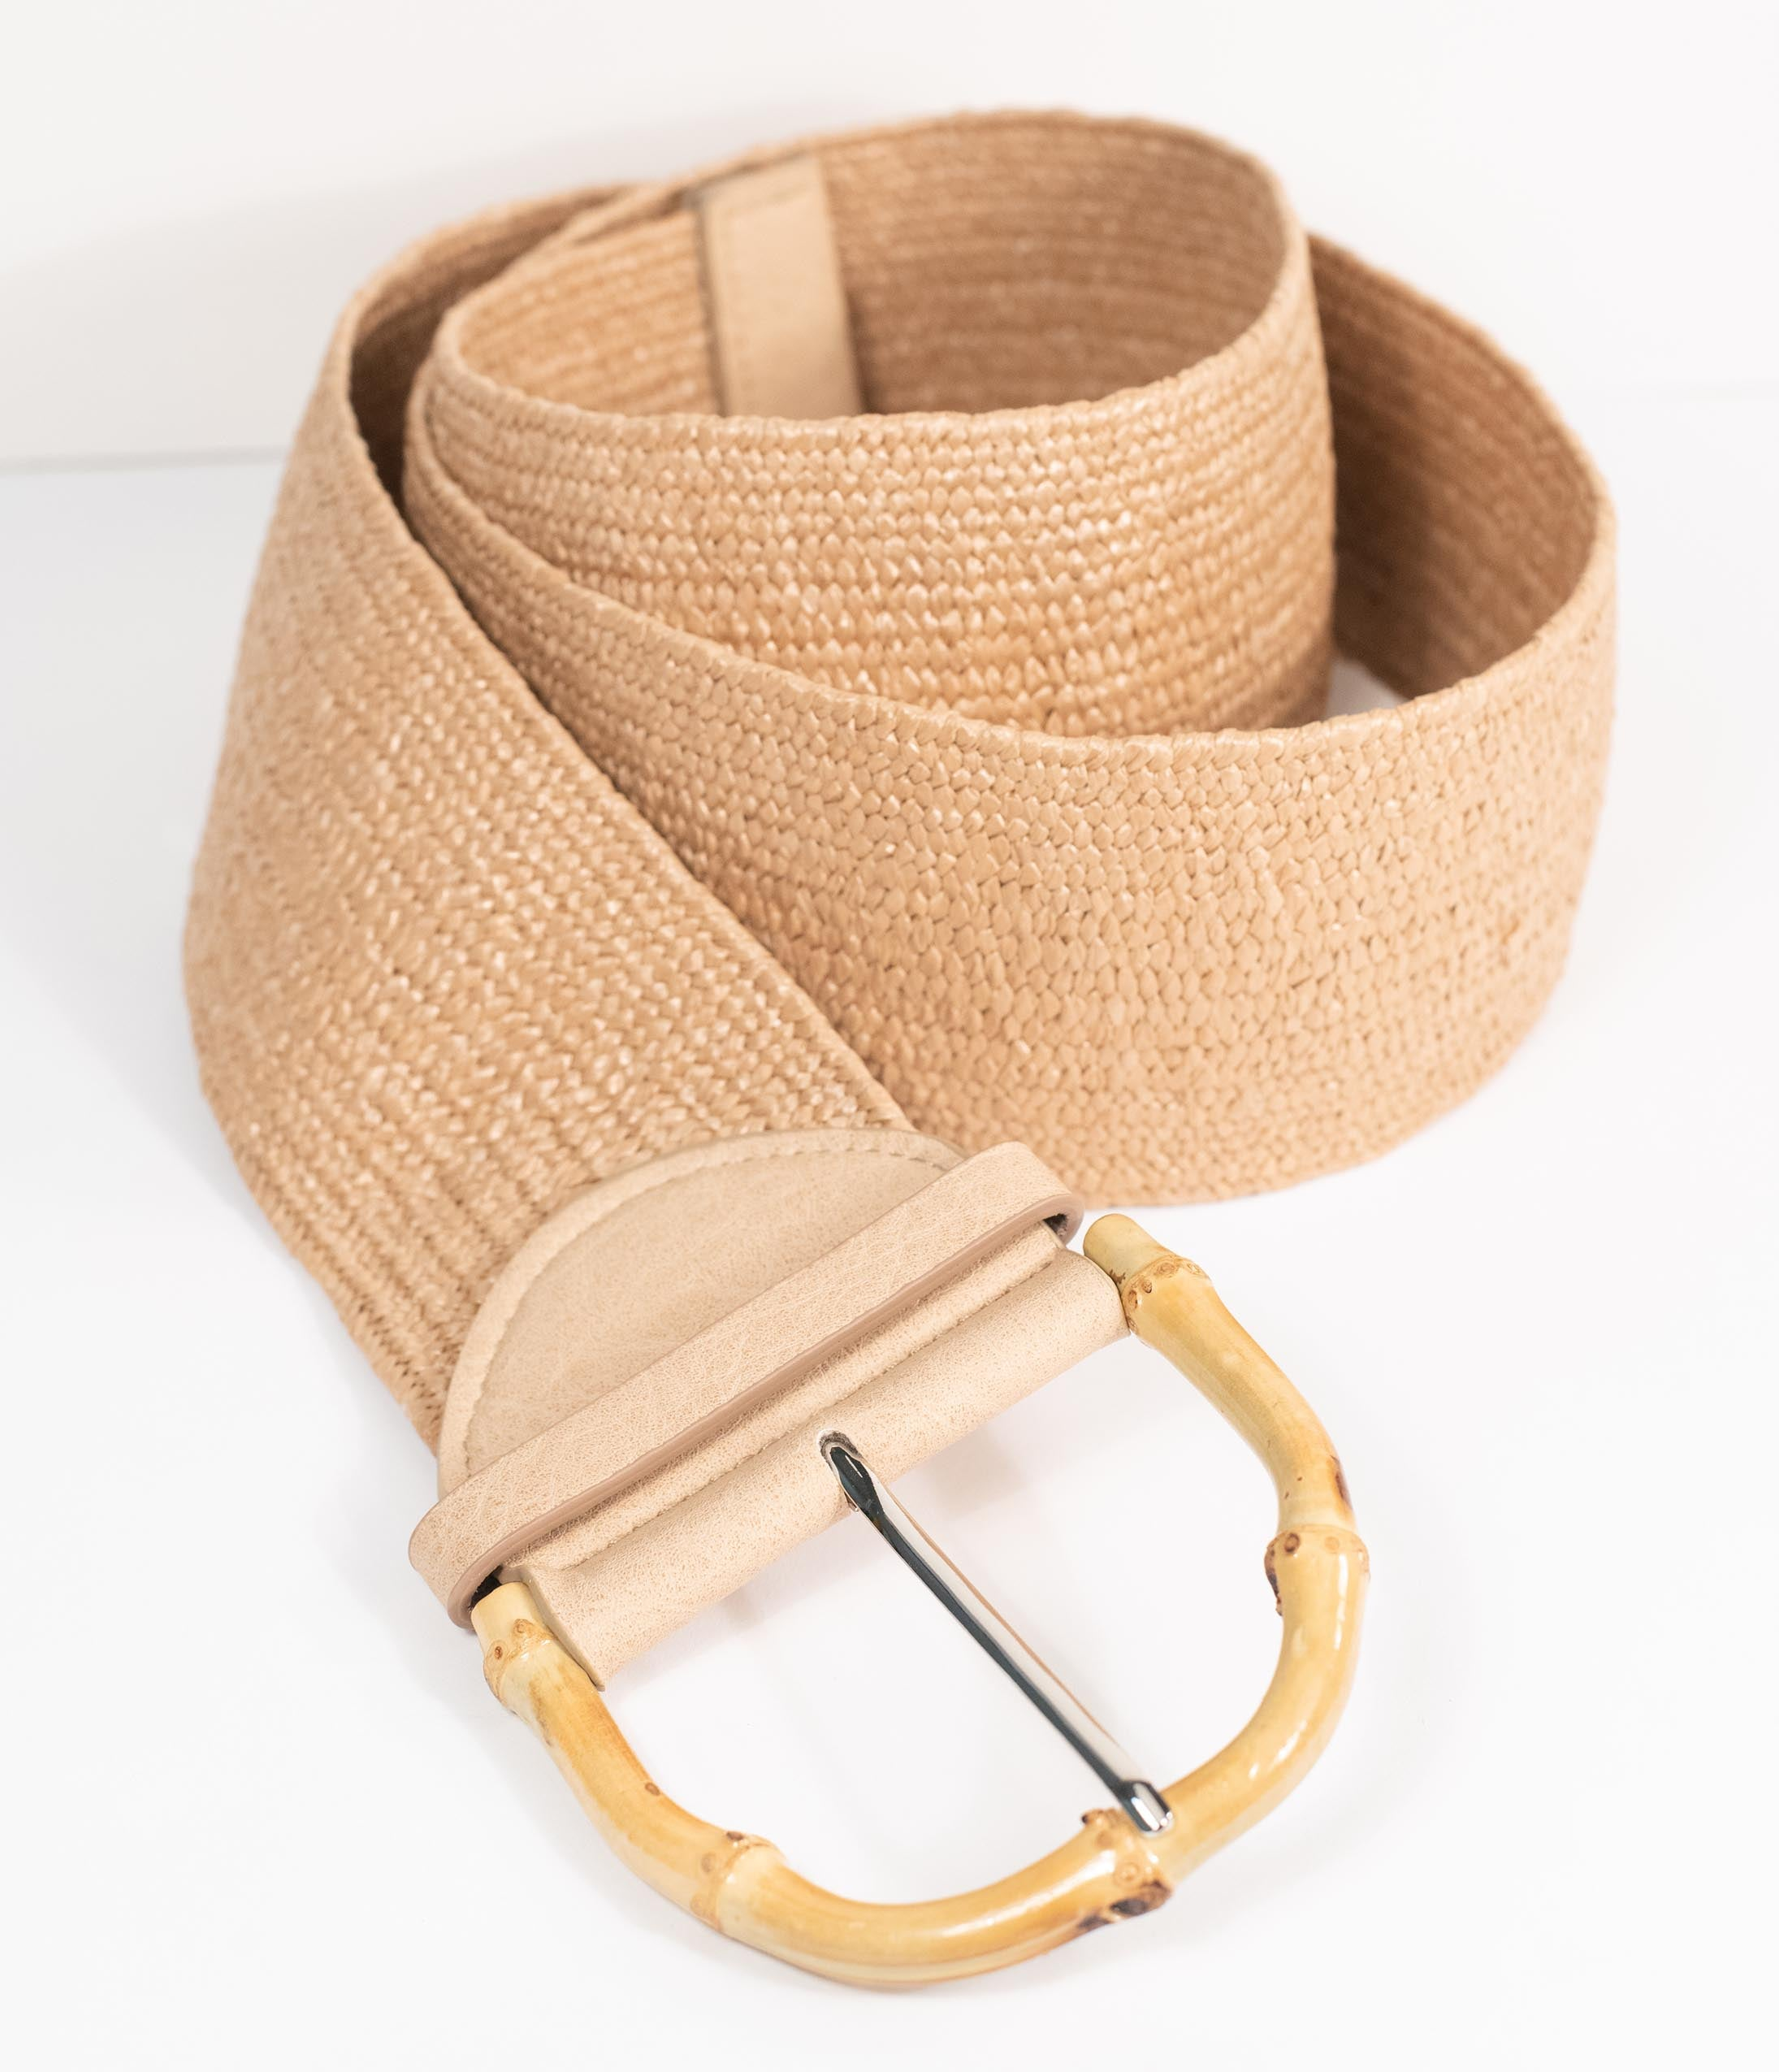 What Did Women Wear in the 1950s? 1950s Fashion Guide Tan Woven Straw Wide Cinch Belt $28.00 AT vintagedancer.com